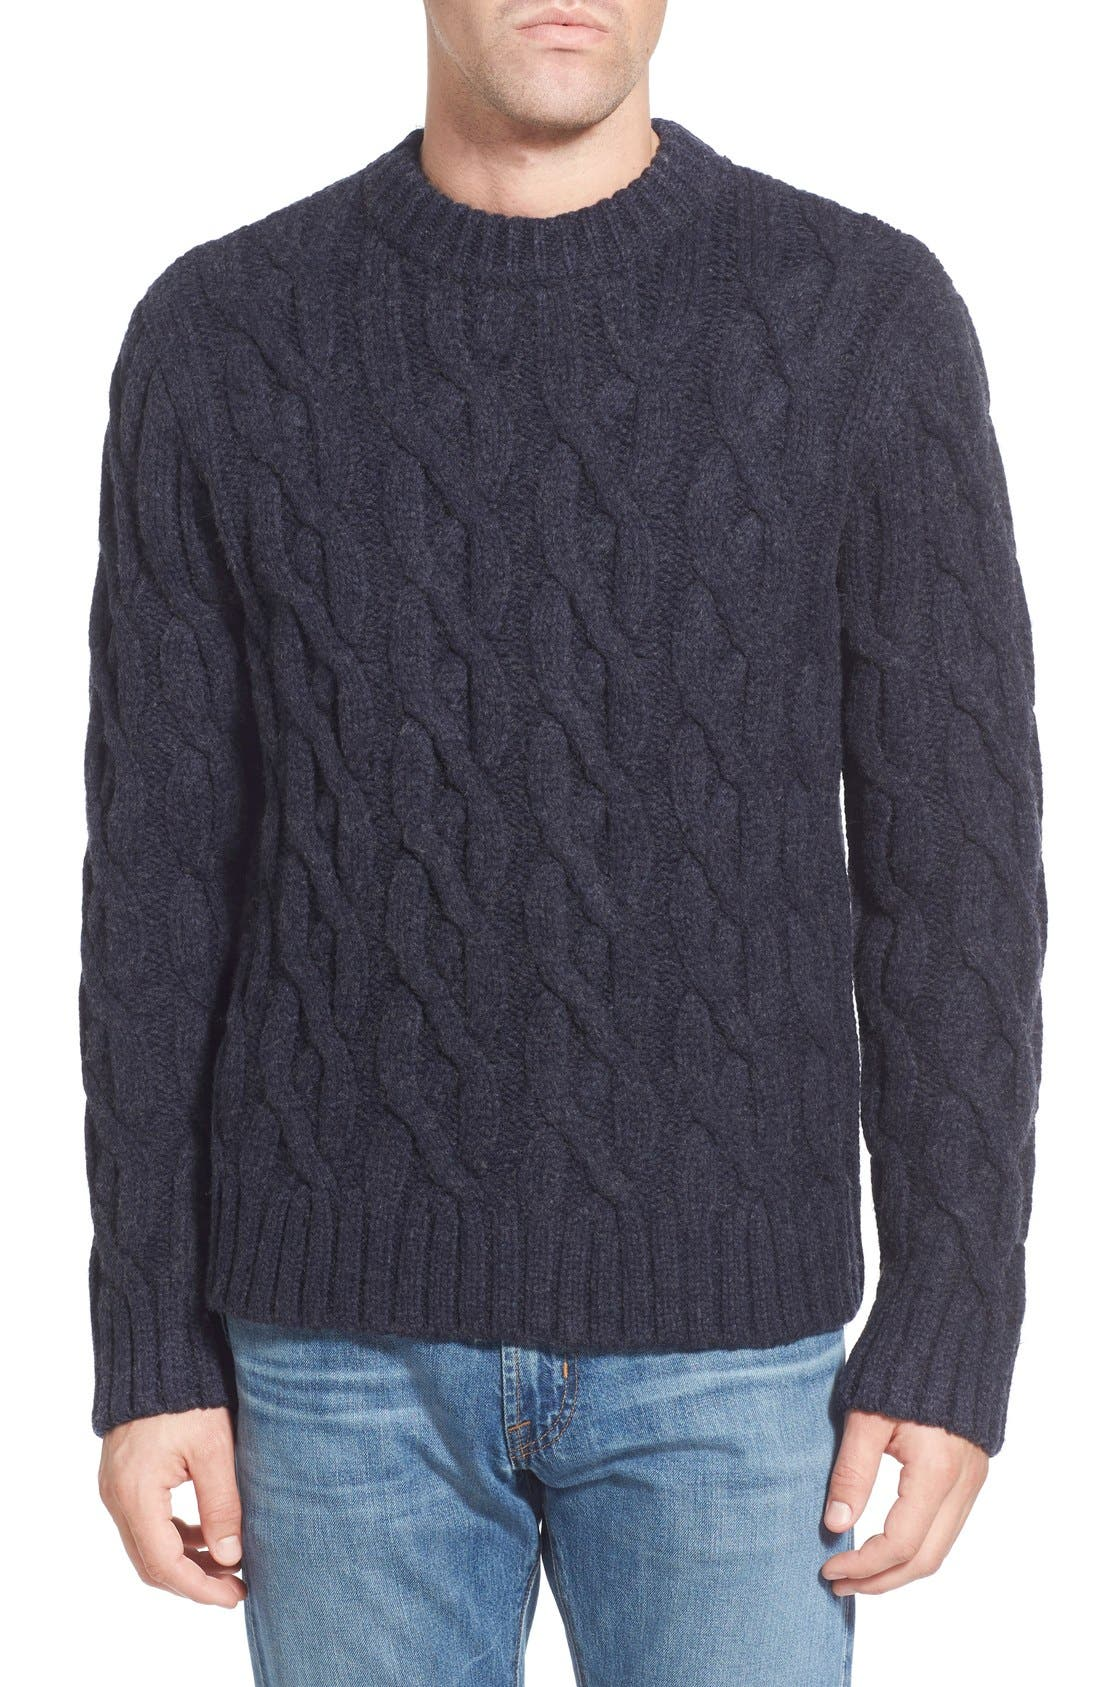 Regular Fit Cable Knit Crewneck Wool Blend Sweater,                             Main thumbnail 1, color,                             Navy